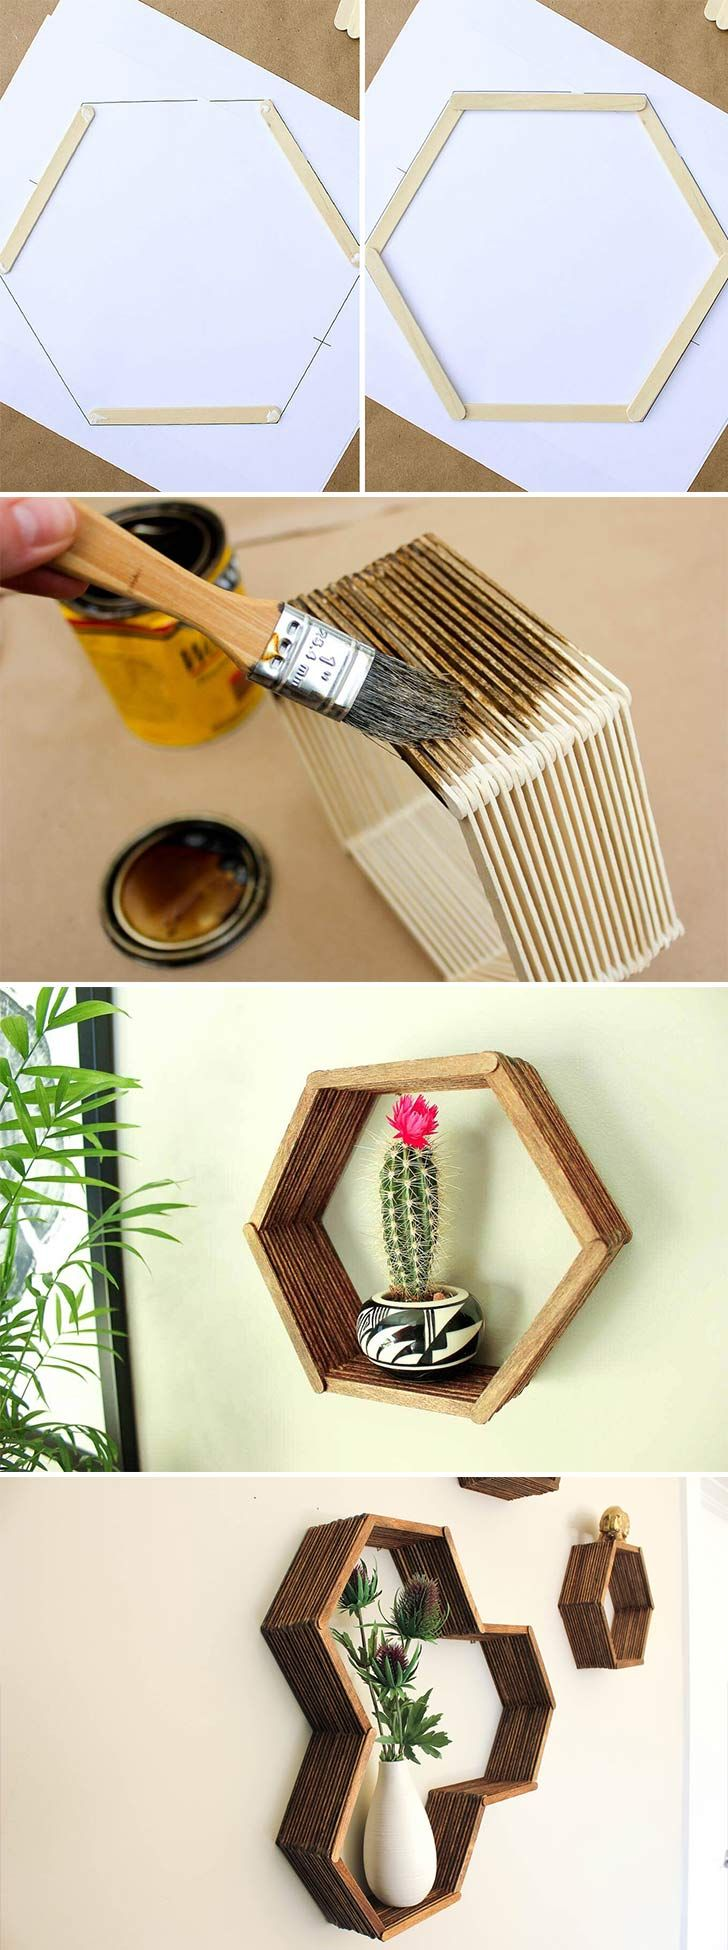 25 Best Ideas About Popsicle Stick Crafts On Pinterest Stick Crafts Popsicle Sticks And